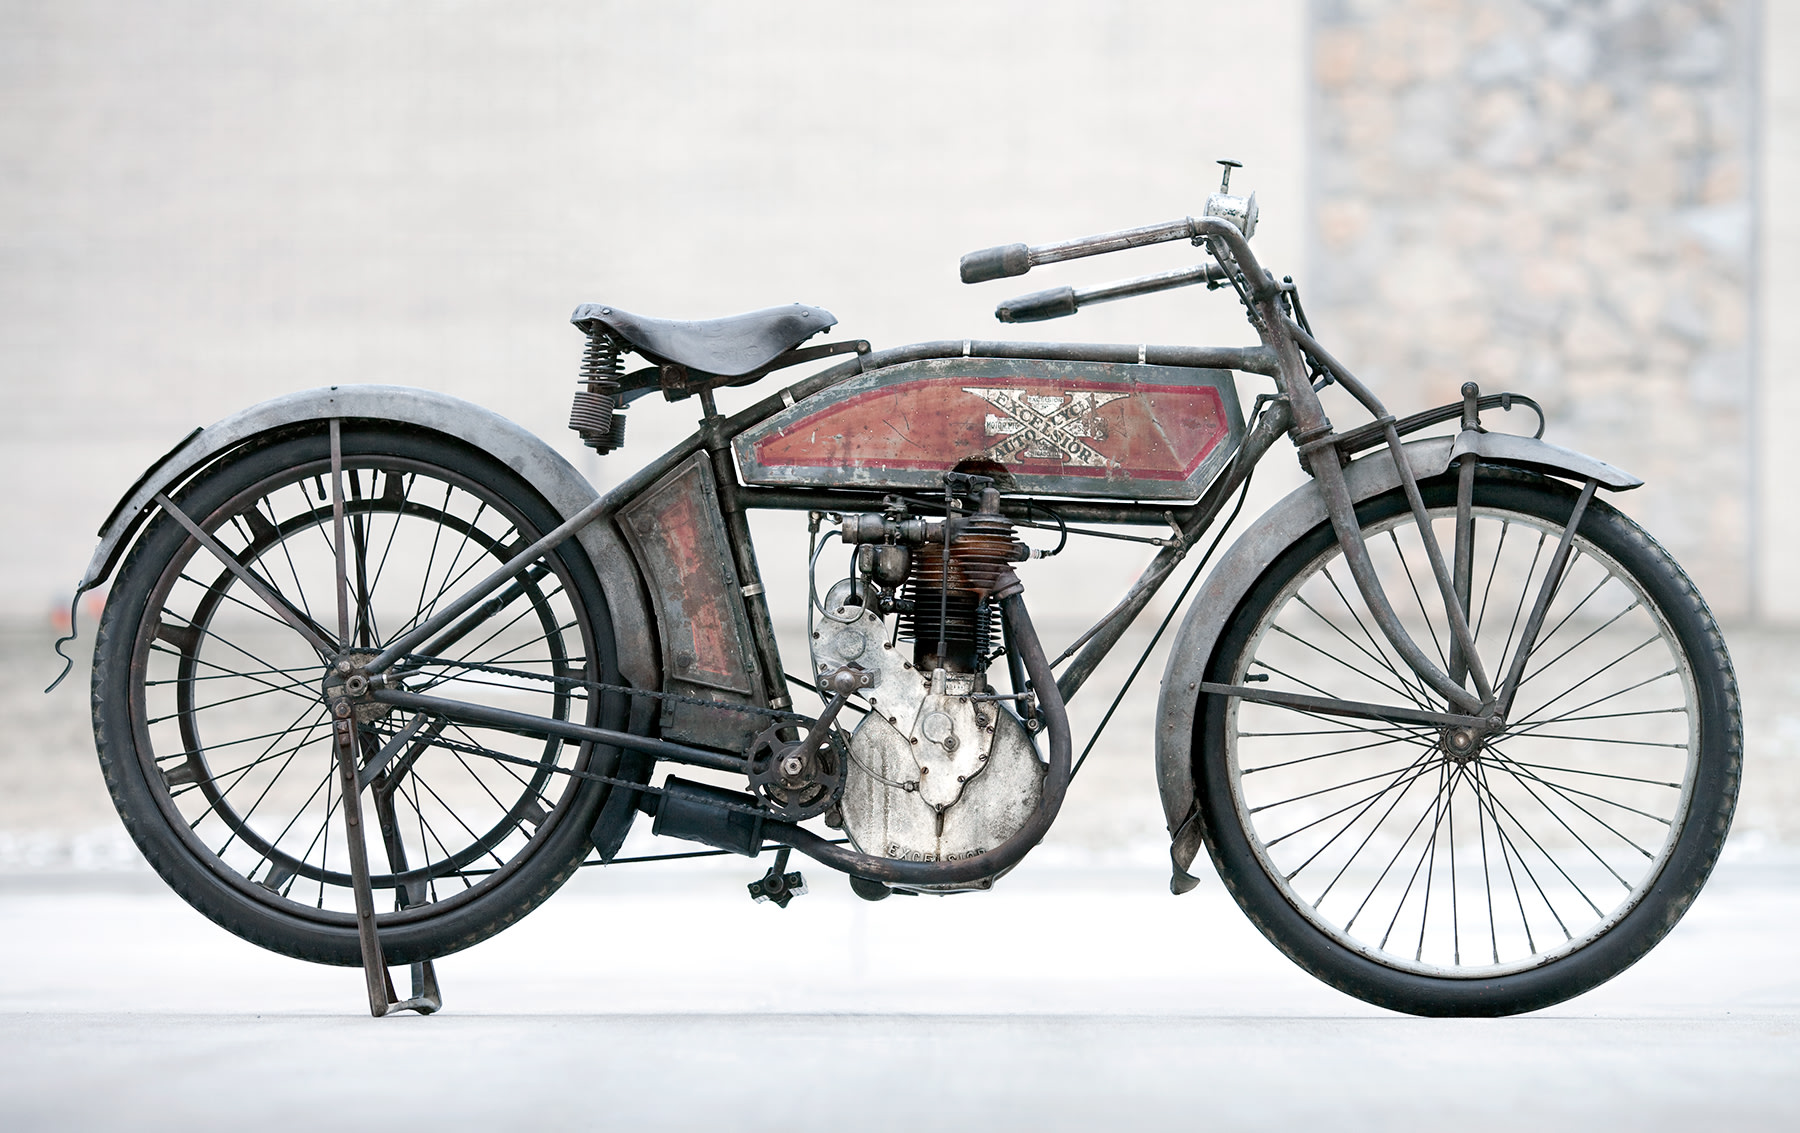 1912 Excelsior Model KM Single Auto-Cycle